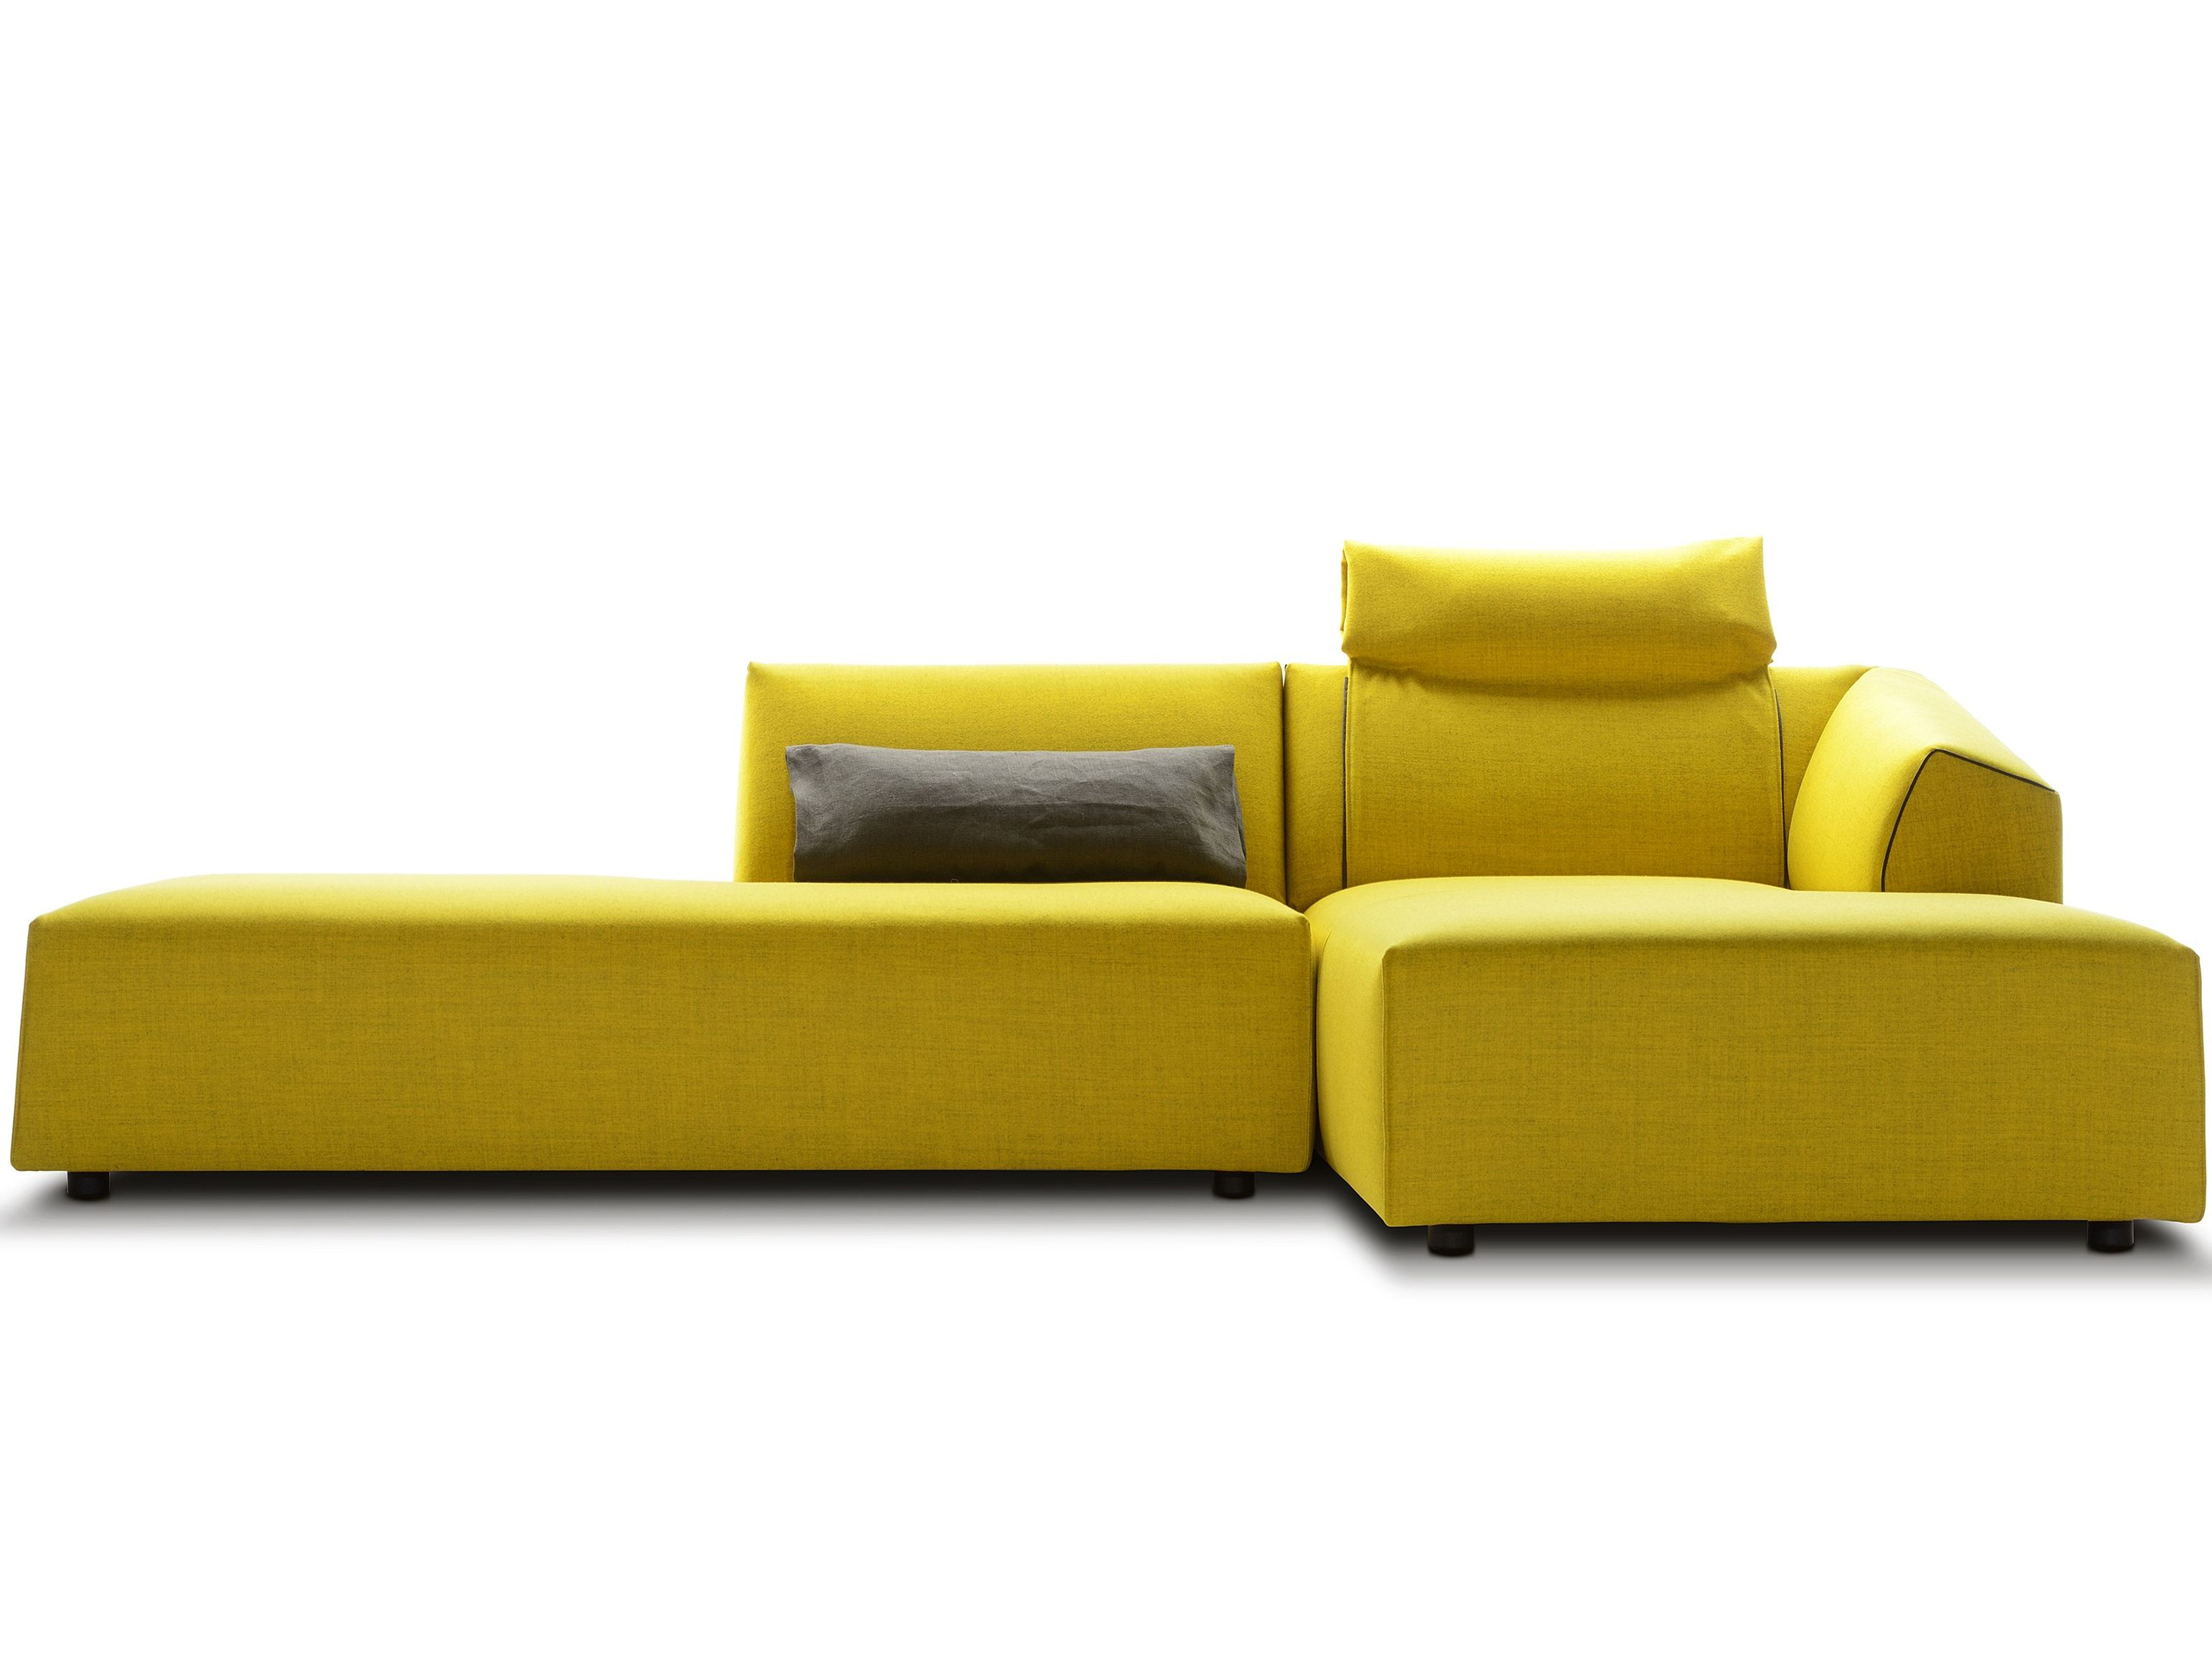 Thea sofa with chaise longue by mdf italia design lina for Sofa chaise longue